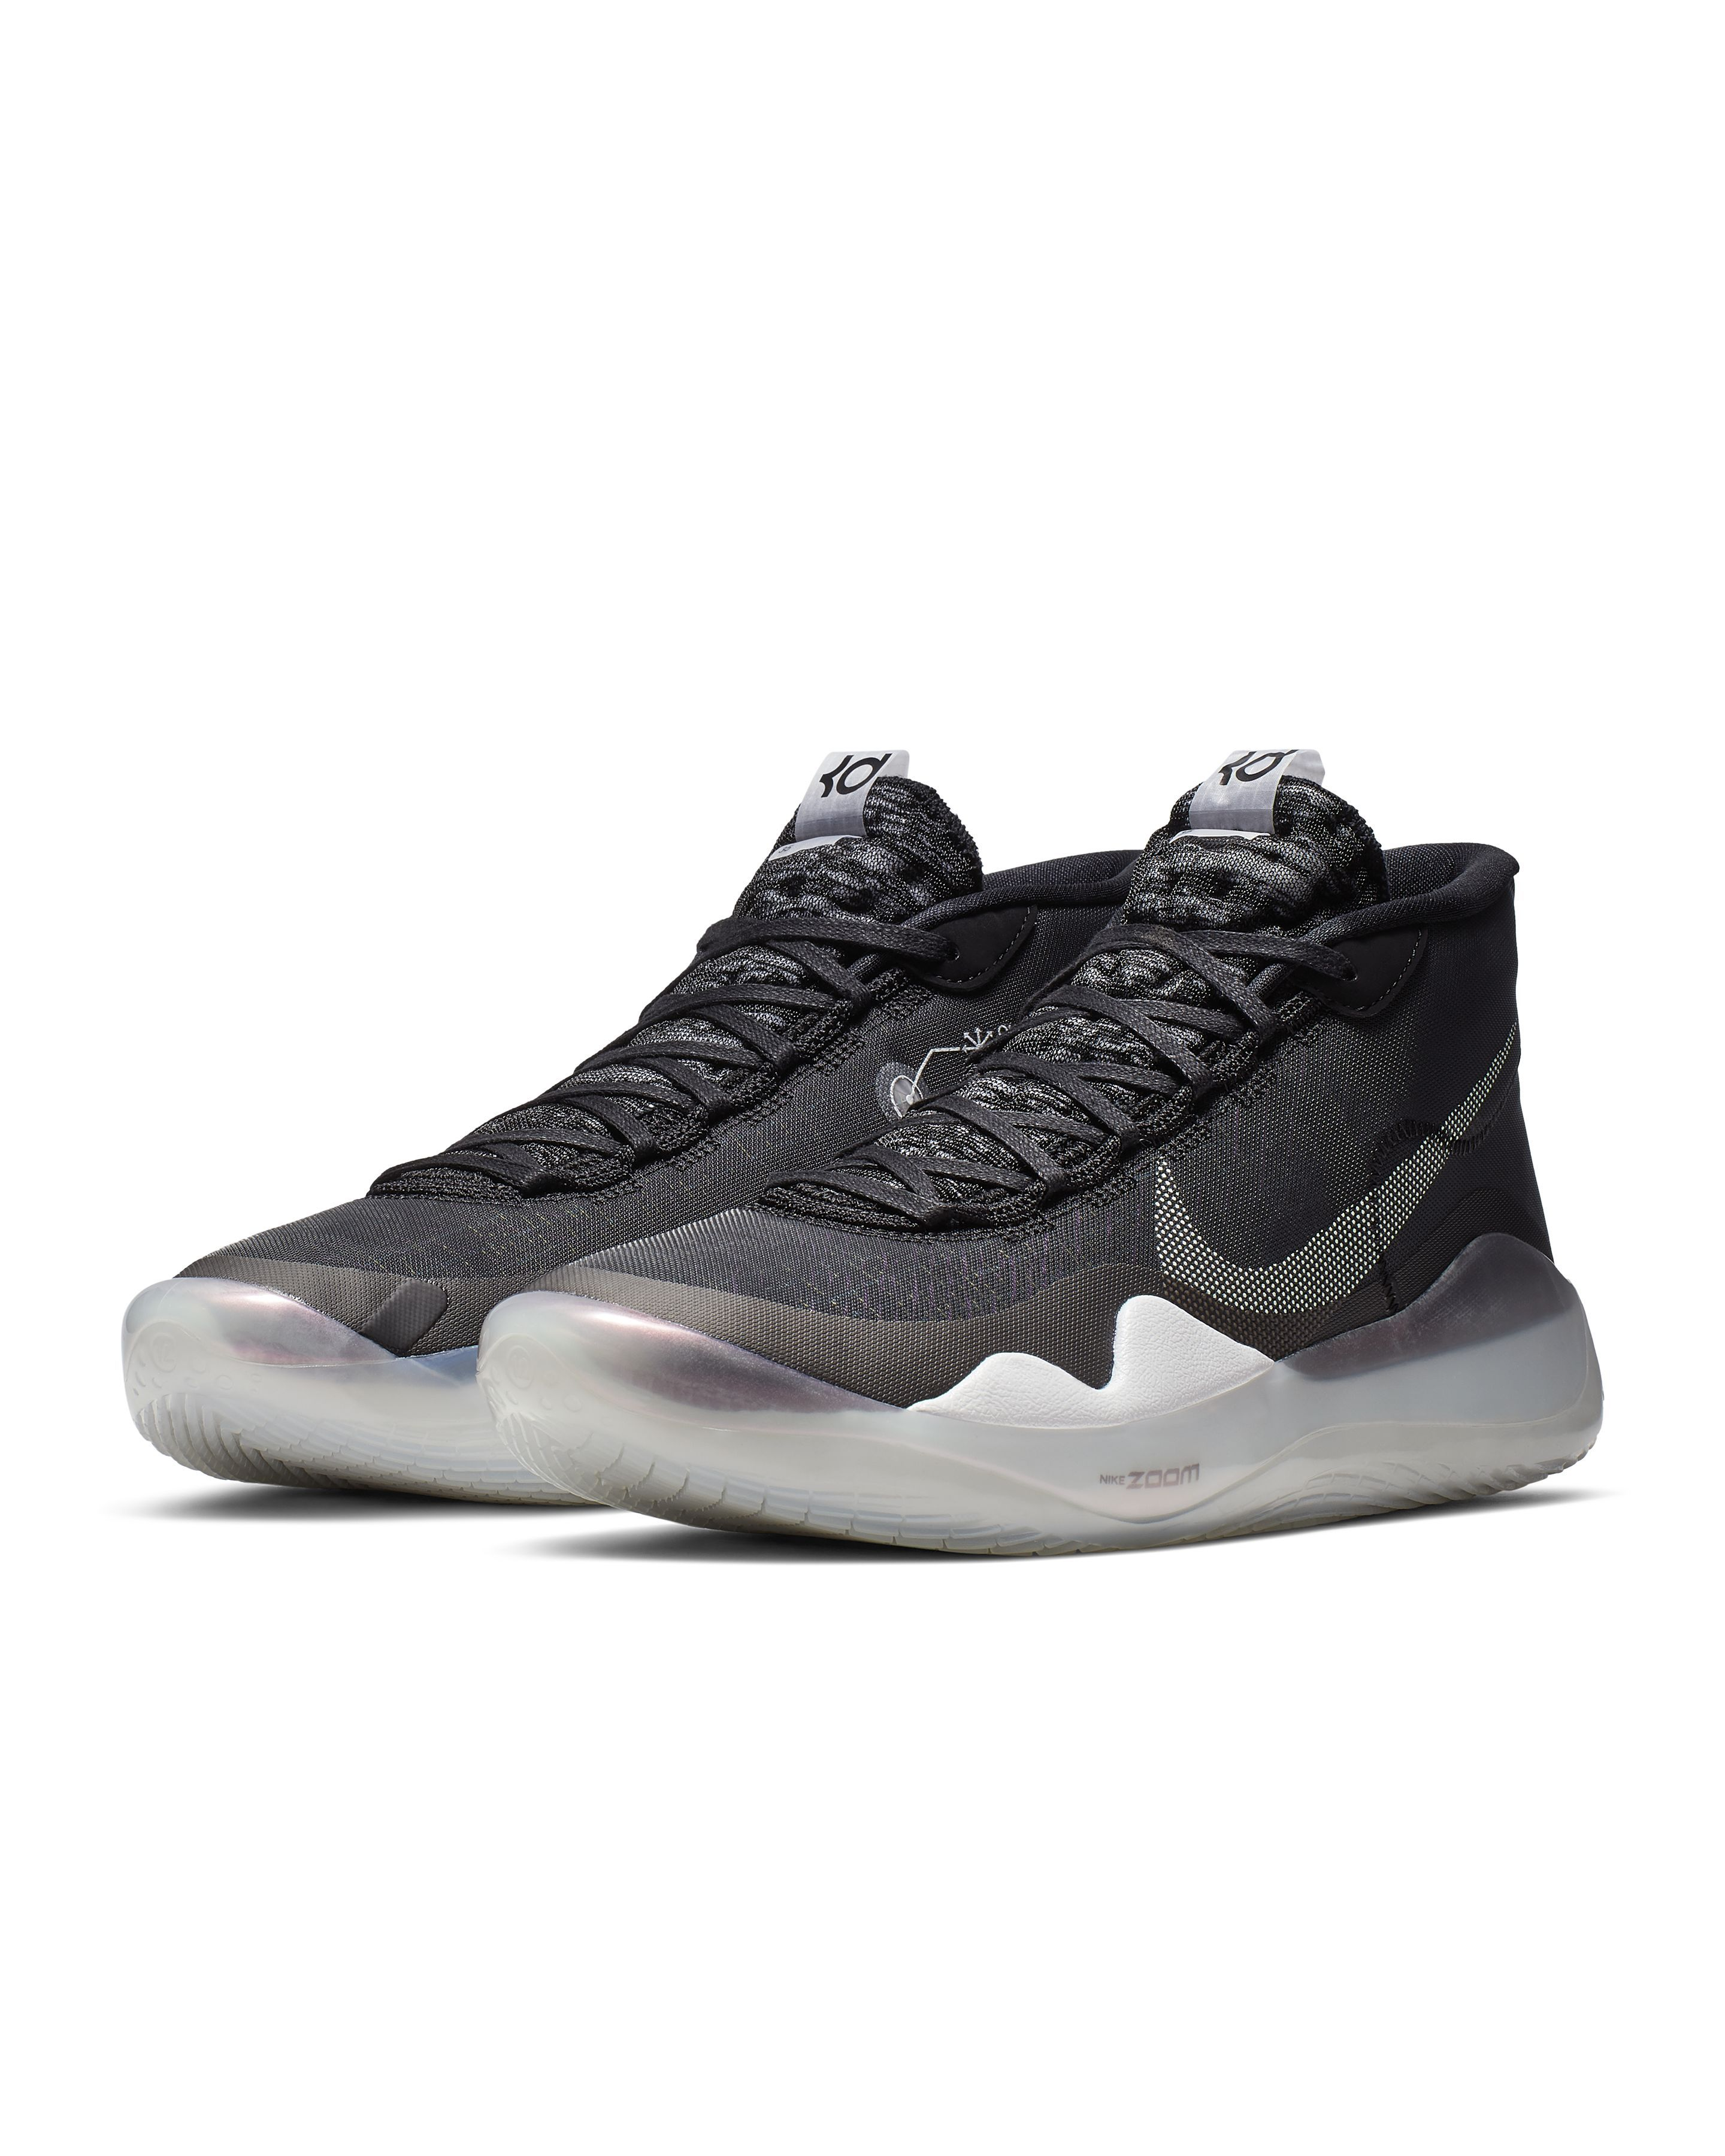 fc9fdfb16d8eb 15 Best Pairs of Basketball Shoes for Men 2019